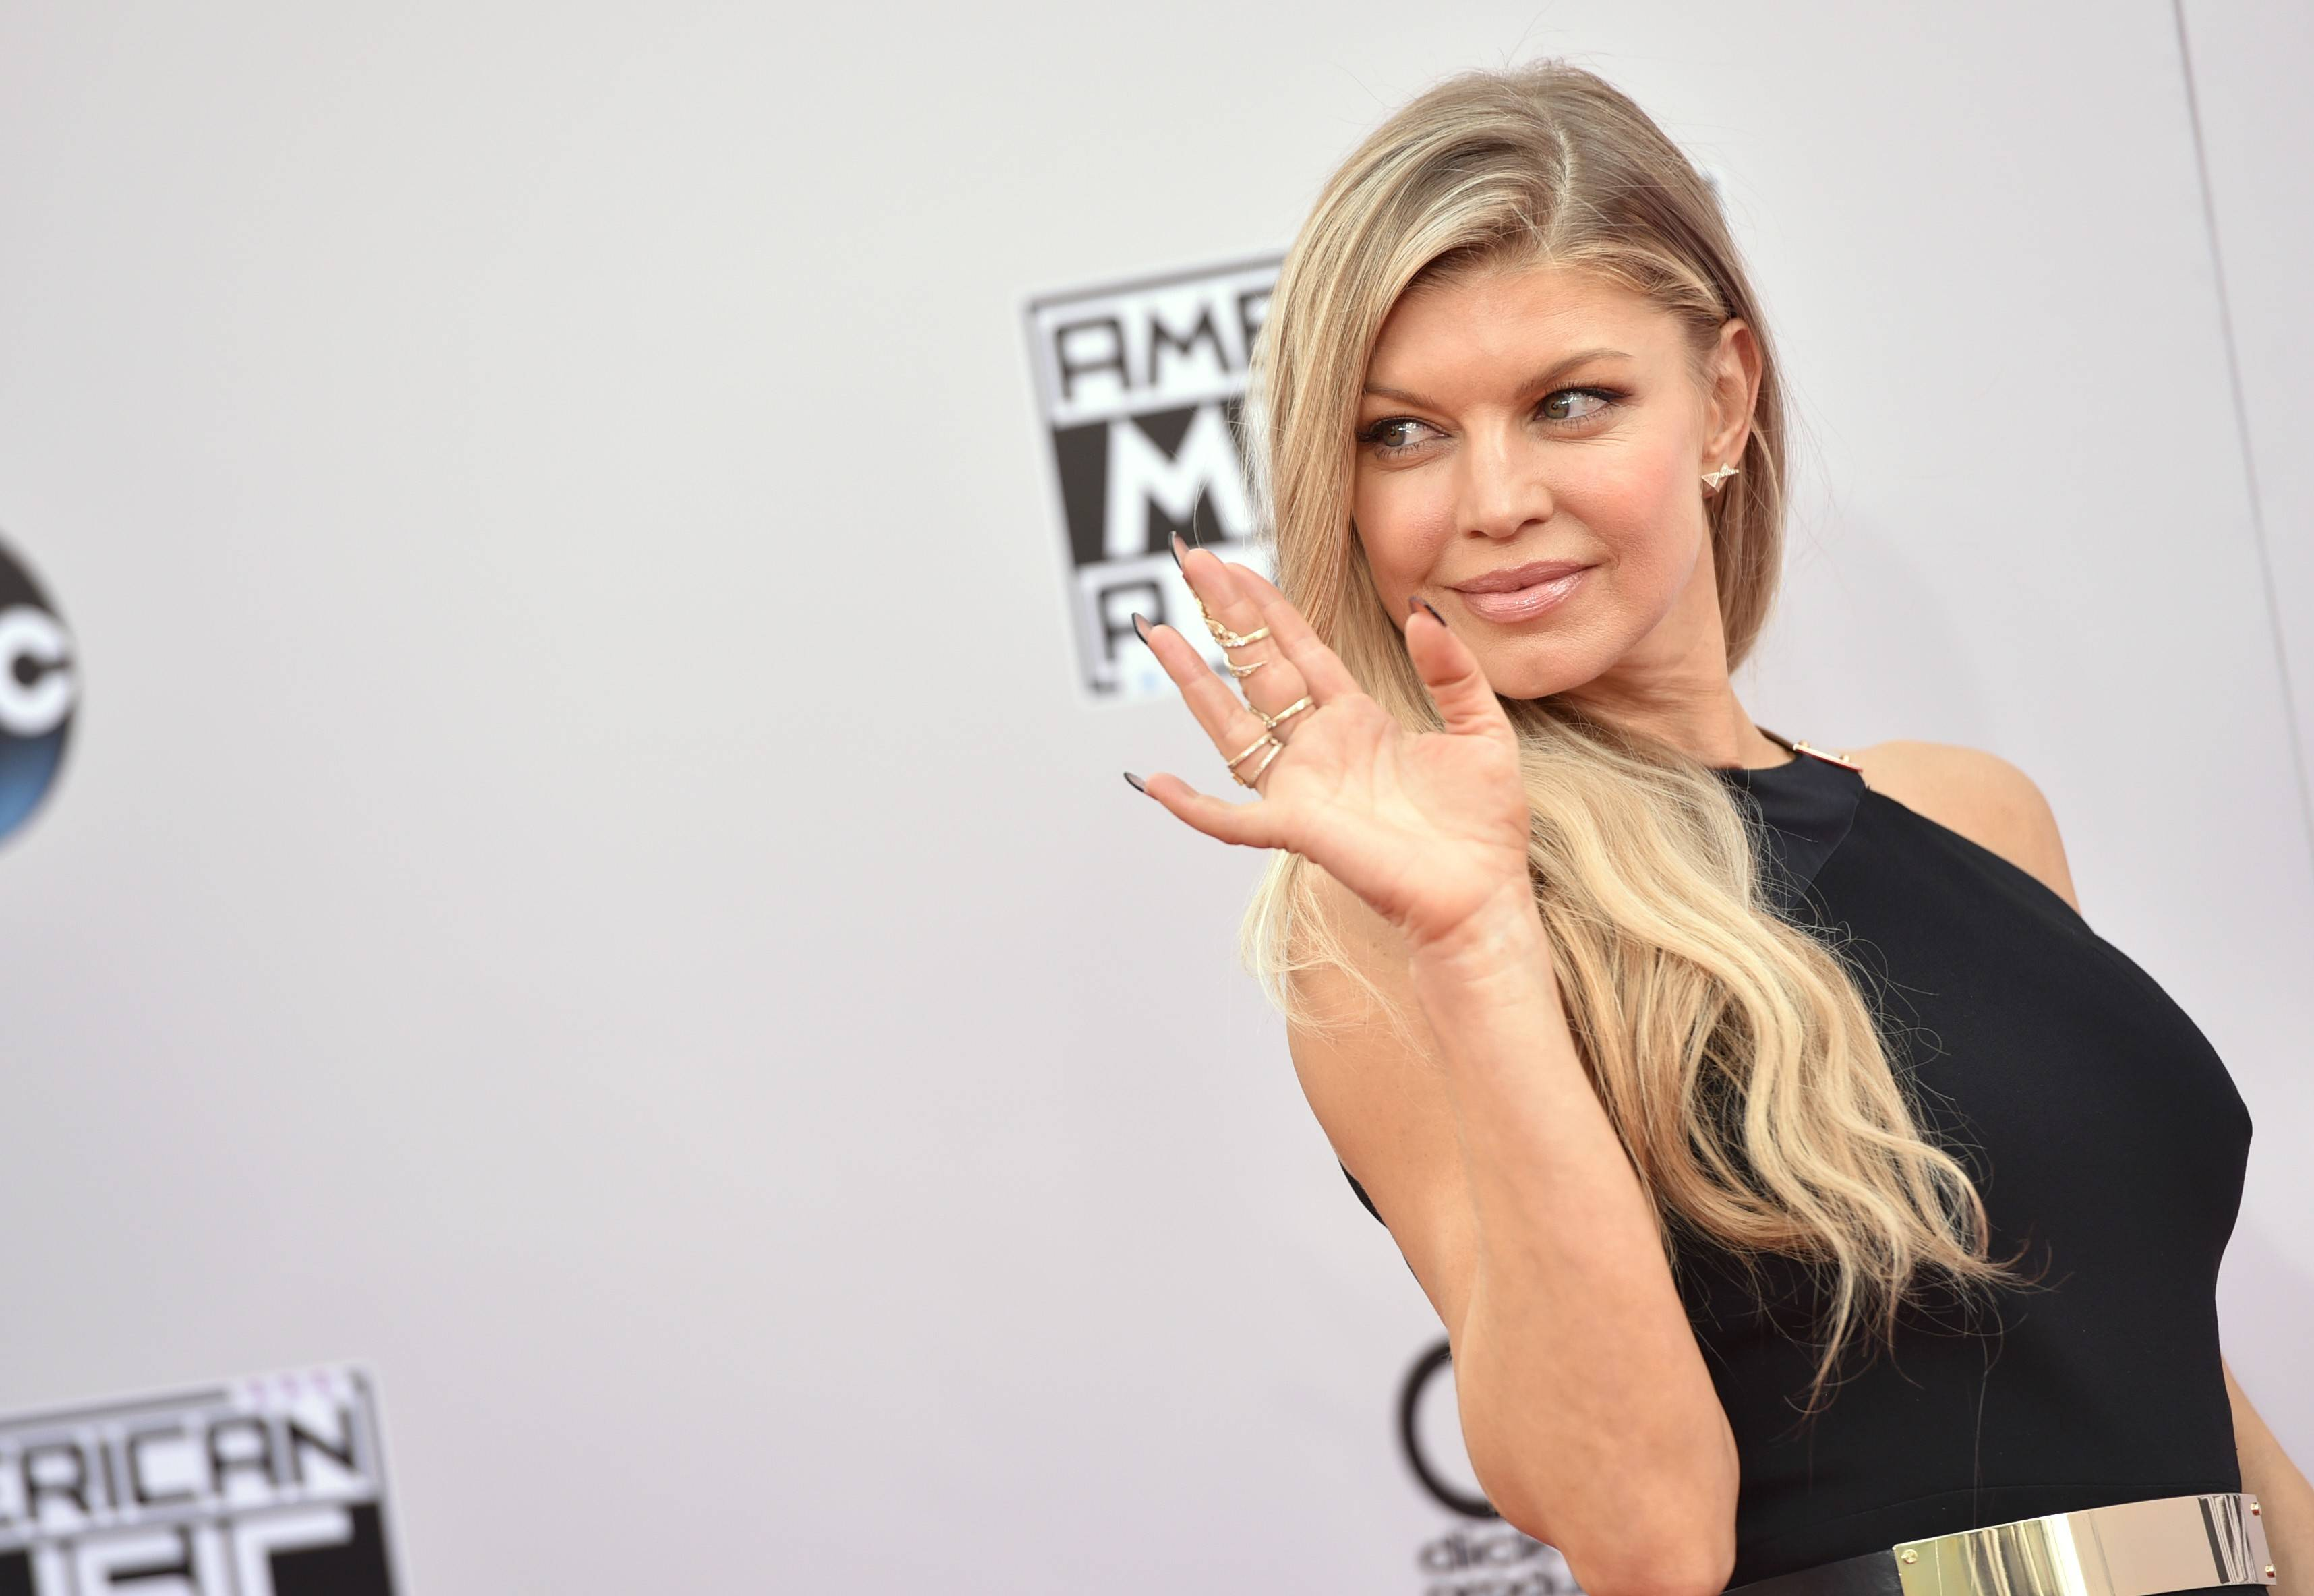 Fergie arrives at the 42nd annual American Music Awards at Nokia Theatre L.A. Live on Sunday, Nov. 23, 2014, in Los Angeles.